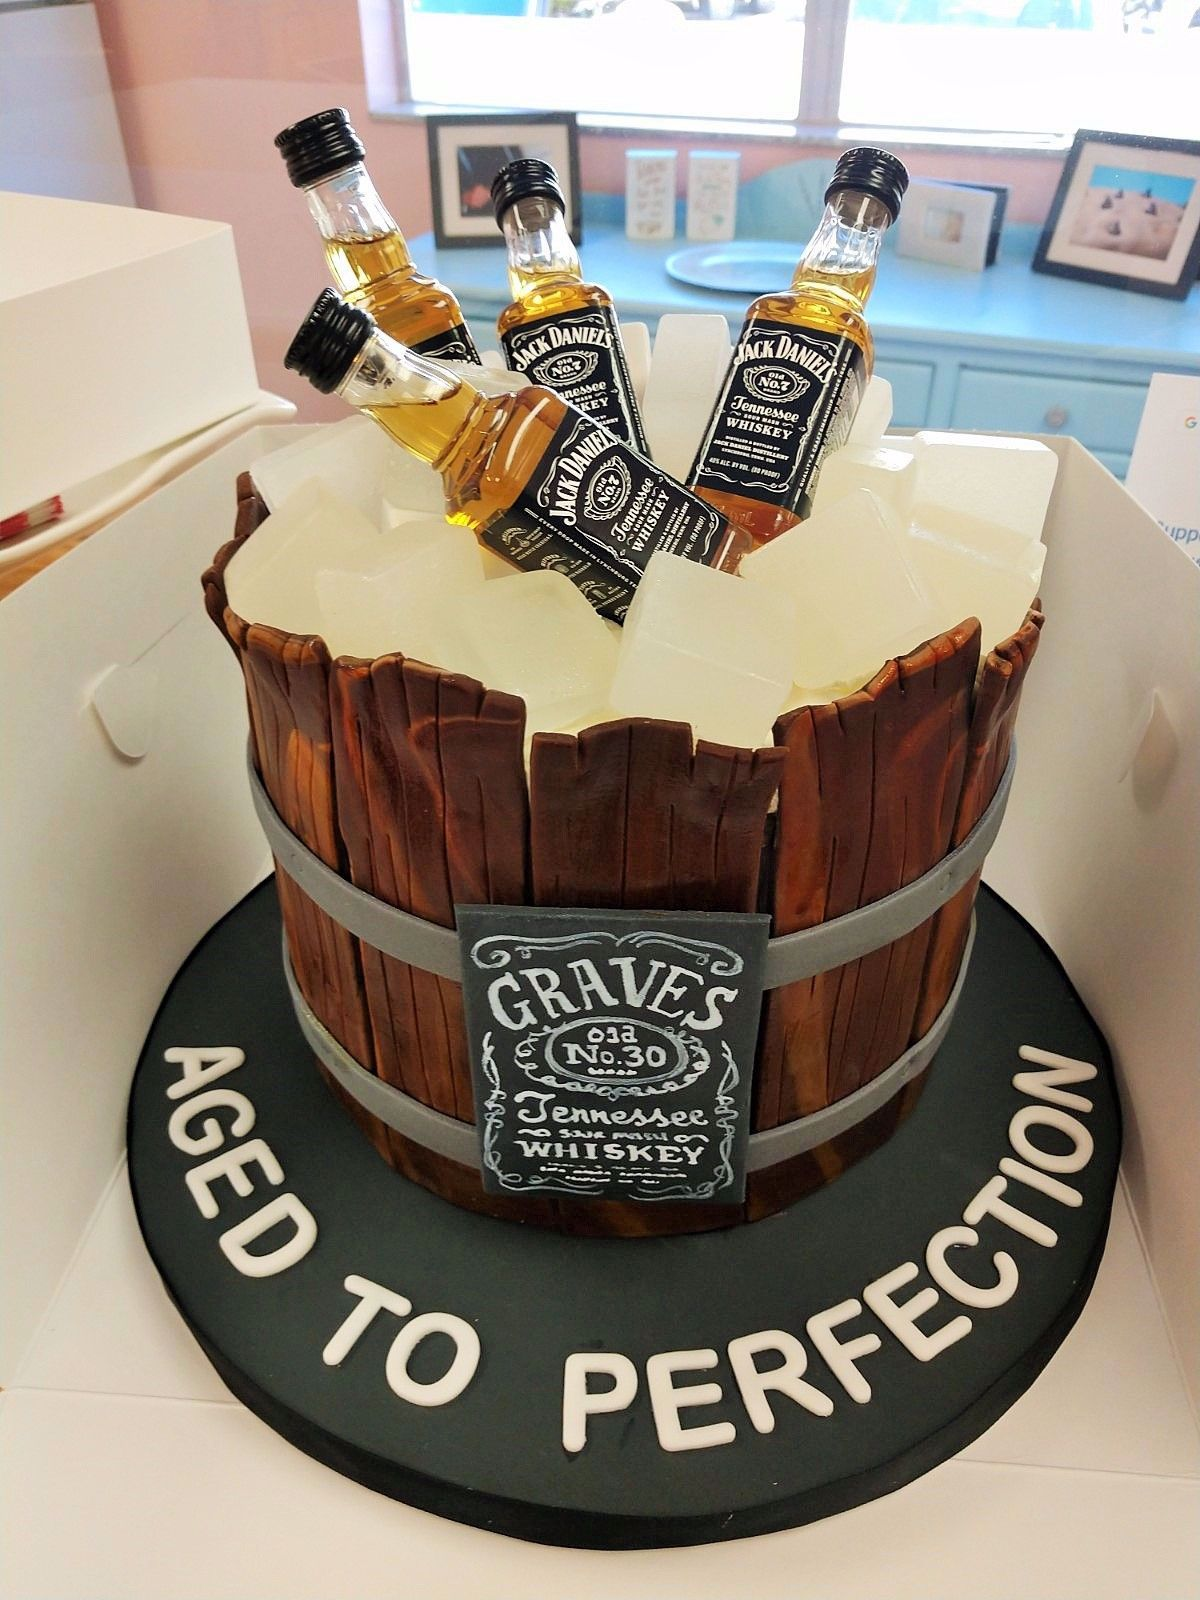 Jack Daniels Cake 30th Birthday Cake Birthday Cakes For Guys